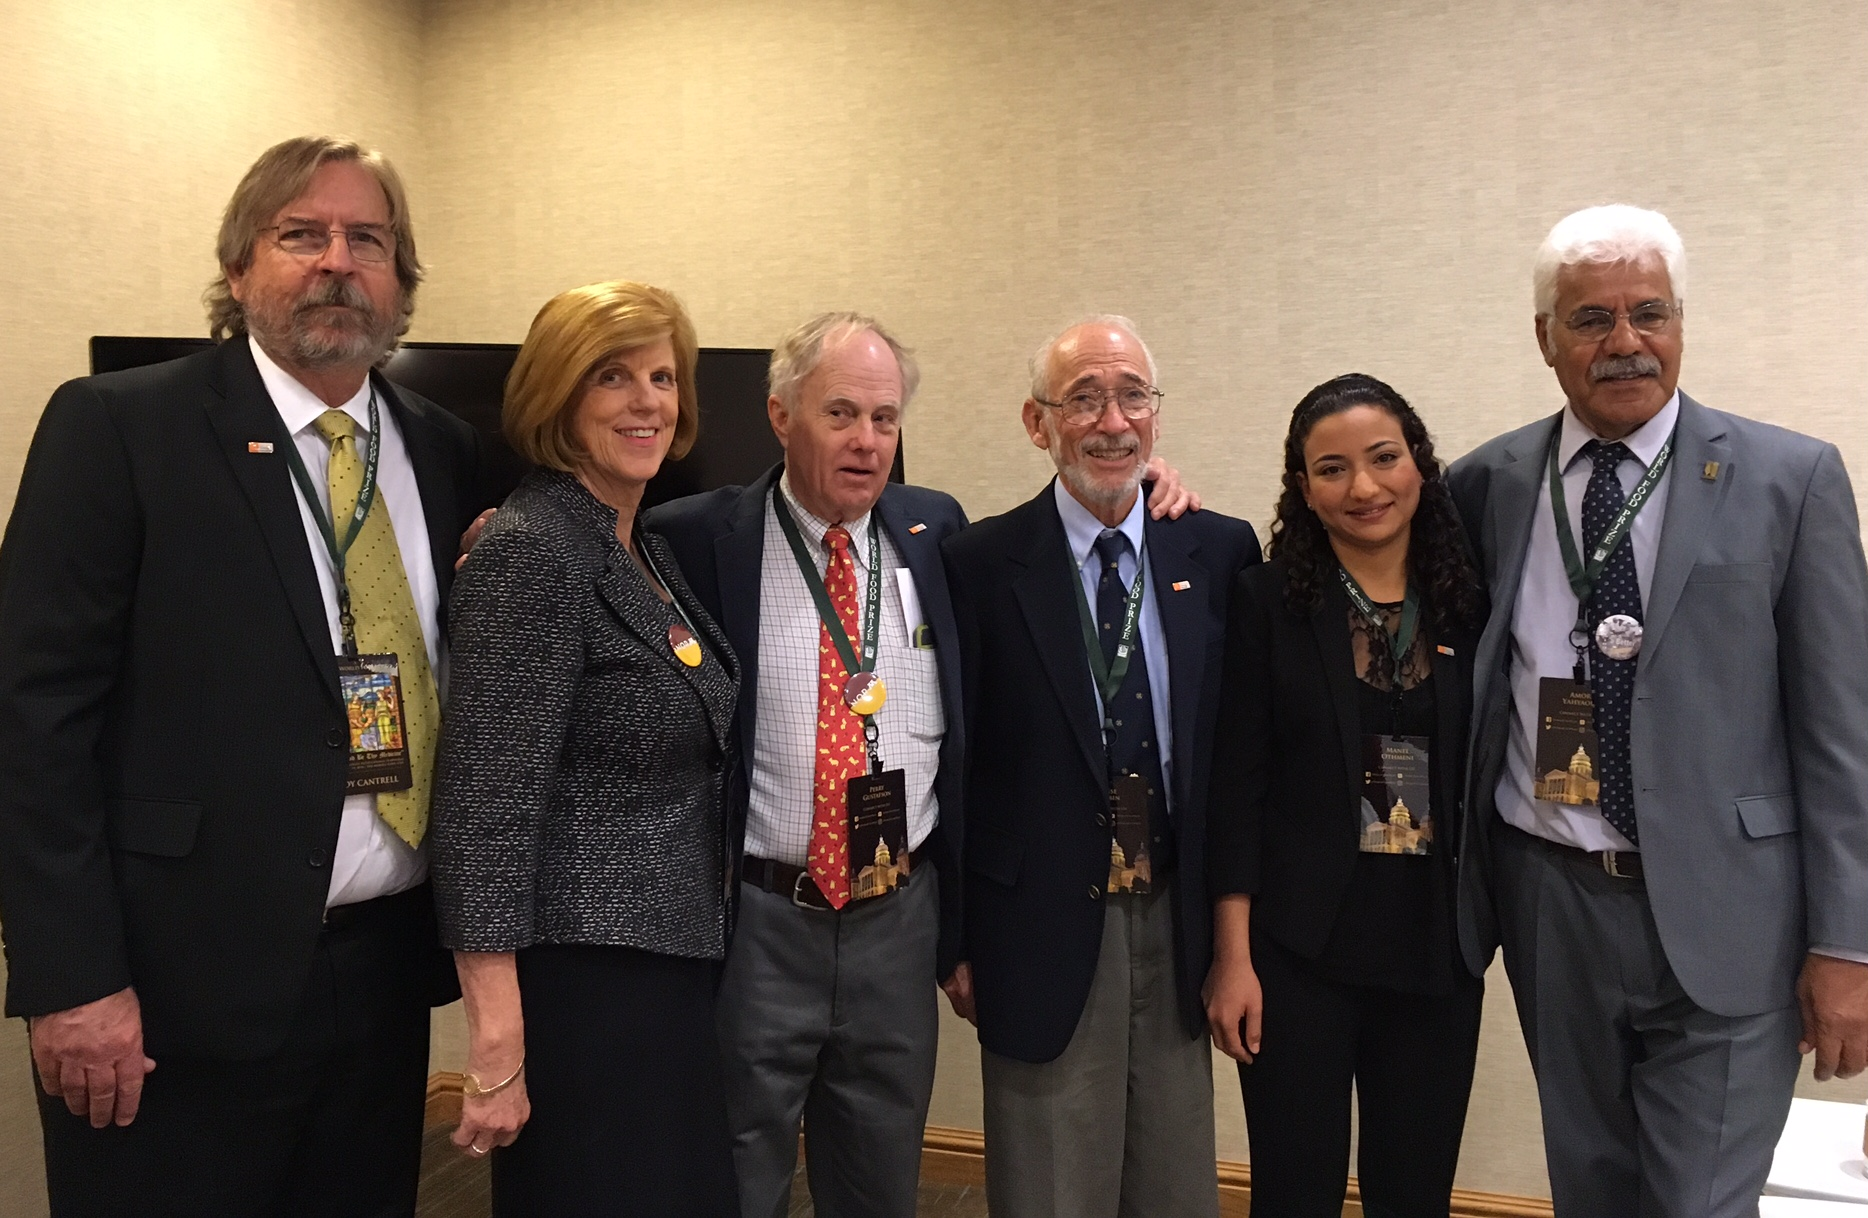 """Roy Cantrell, Jeannie Borlaug Laube, Perry Gustafson, Jessie Dubin, Manel Othmeni , Amor Yahyaoui, panelists from the global wheat community on the """"Training for the Future"""" session at World Food Prize Borlaug Dialogue."""